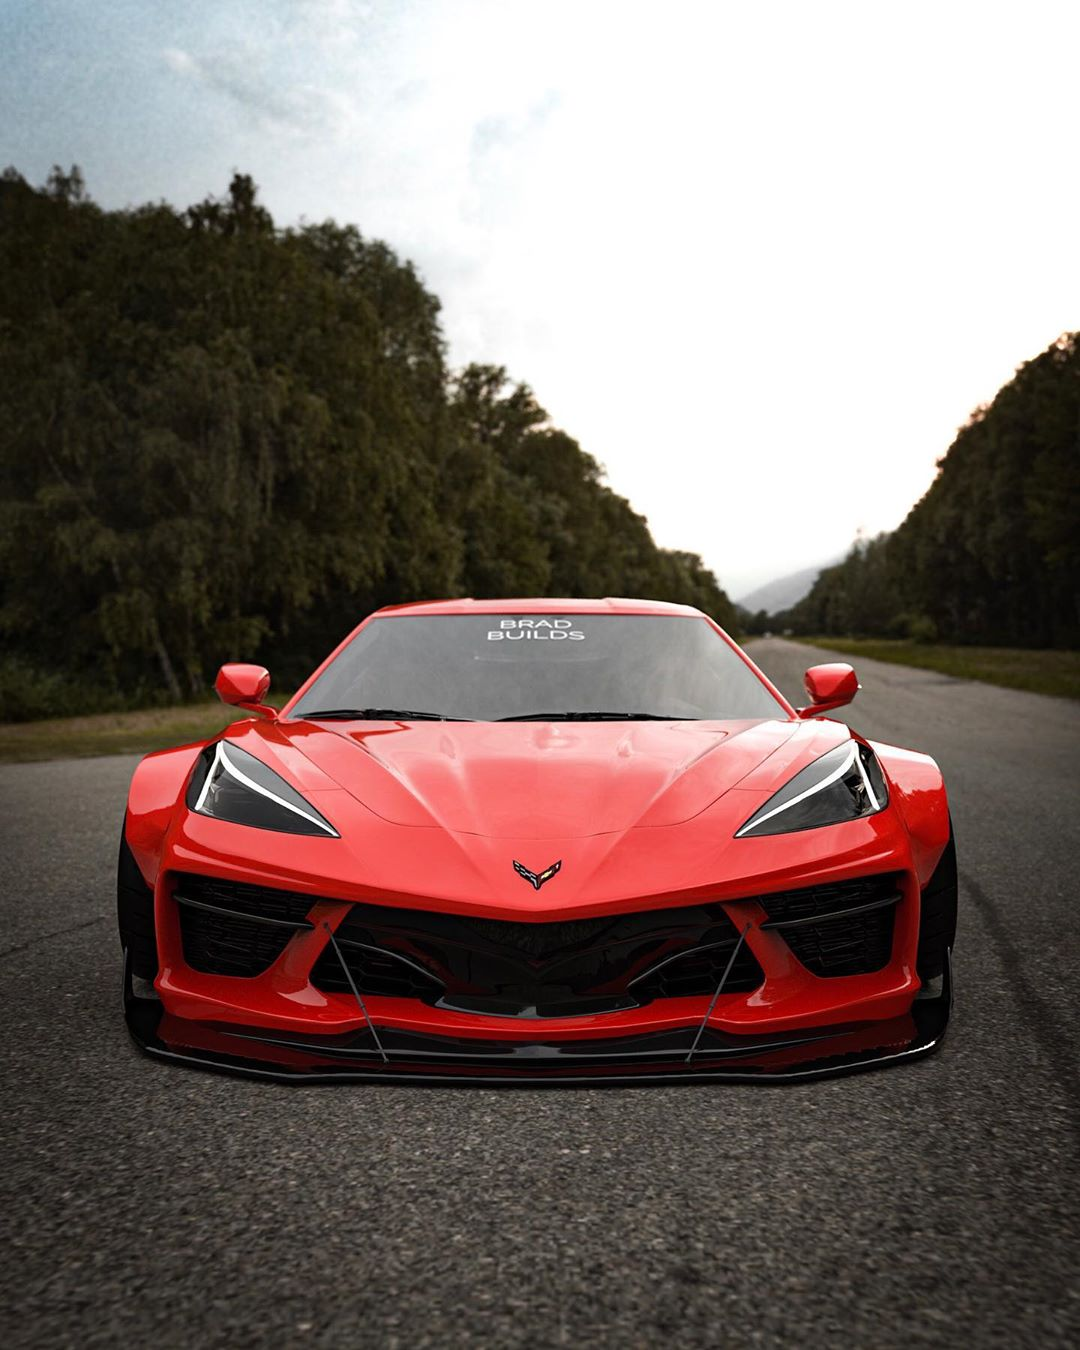 2020 chevrolet corvette c8 rendered with widebody kit